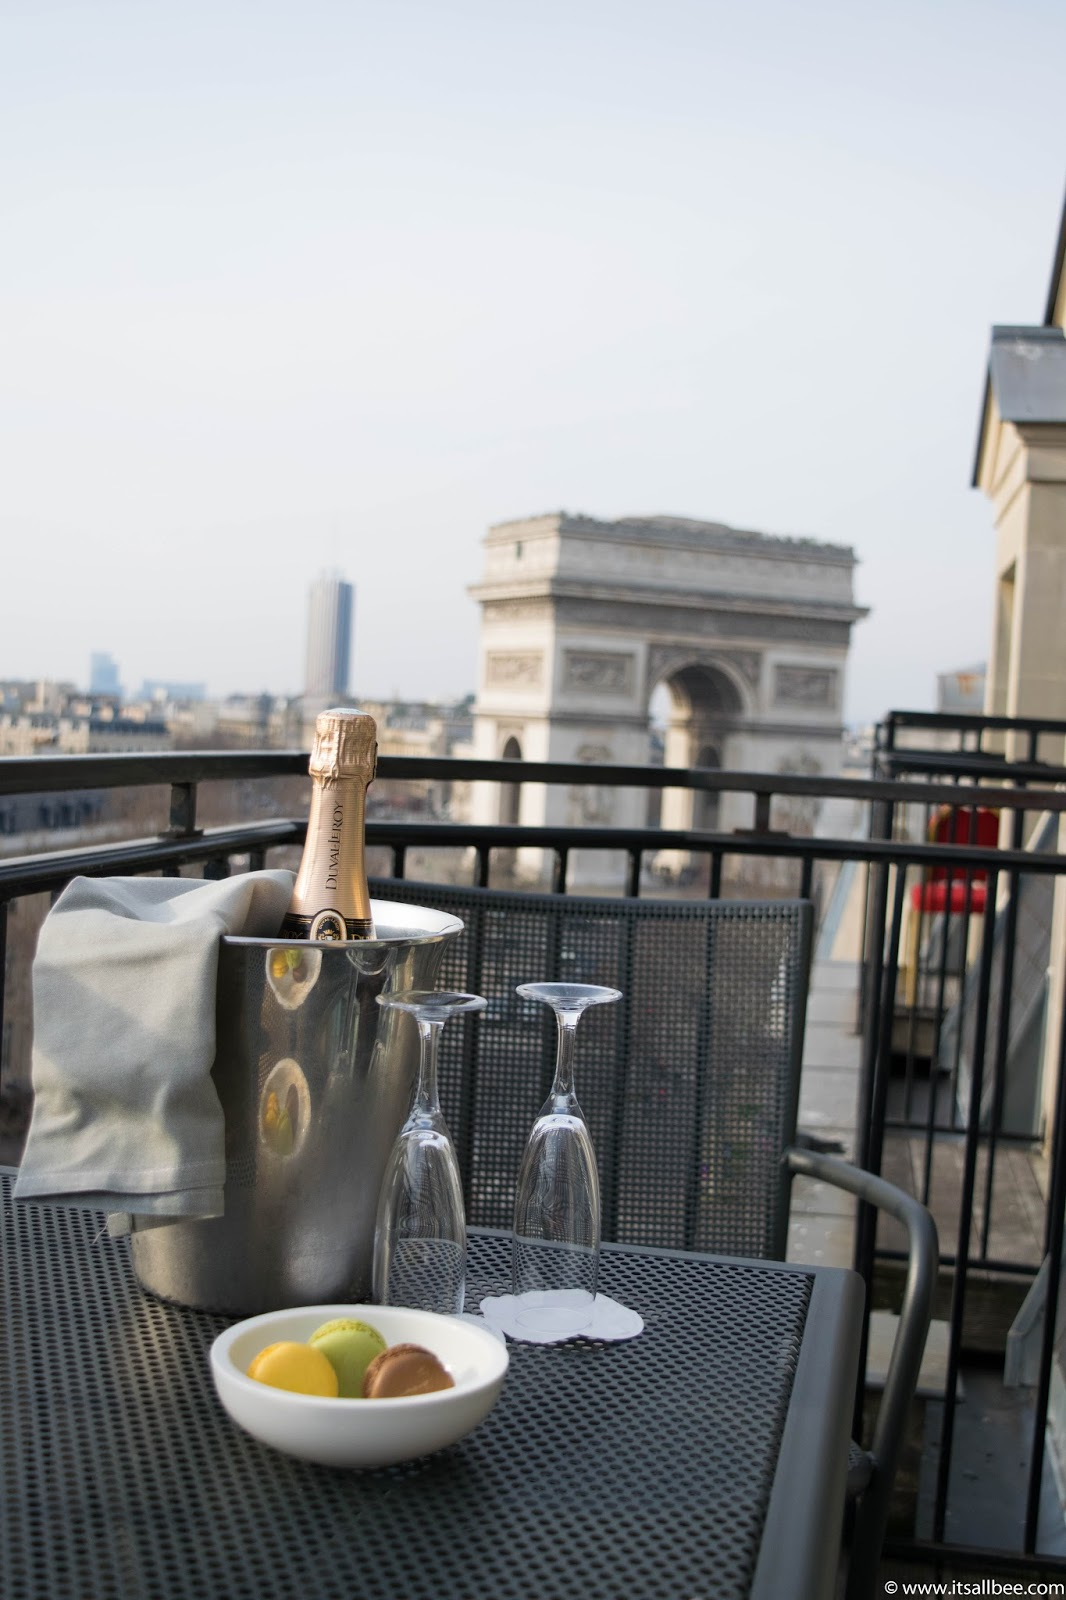 Paris Hotels With Views of Eiffel Tower Top Paris Hotels With A Balcony | 5 star hotel paris view eiffel tower